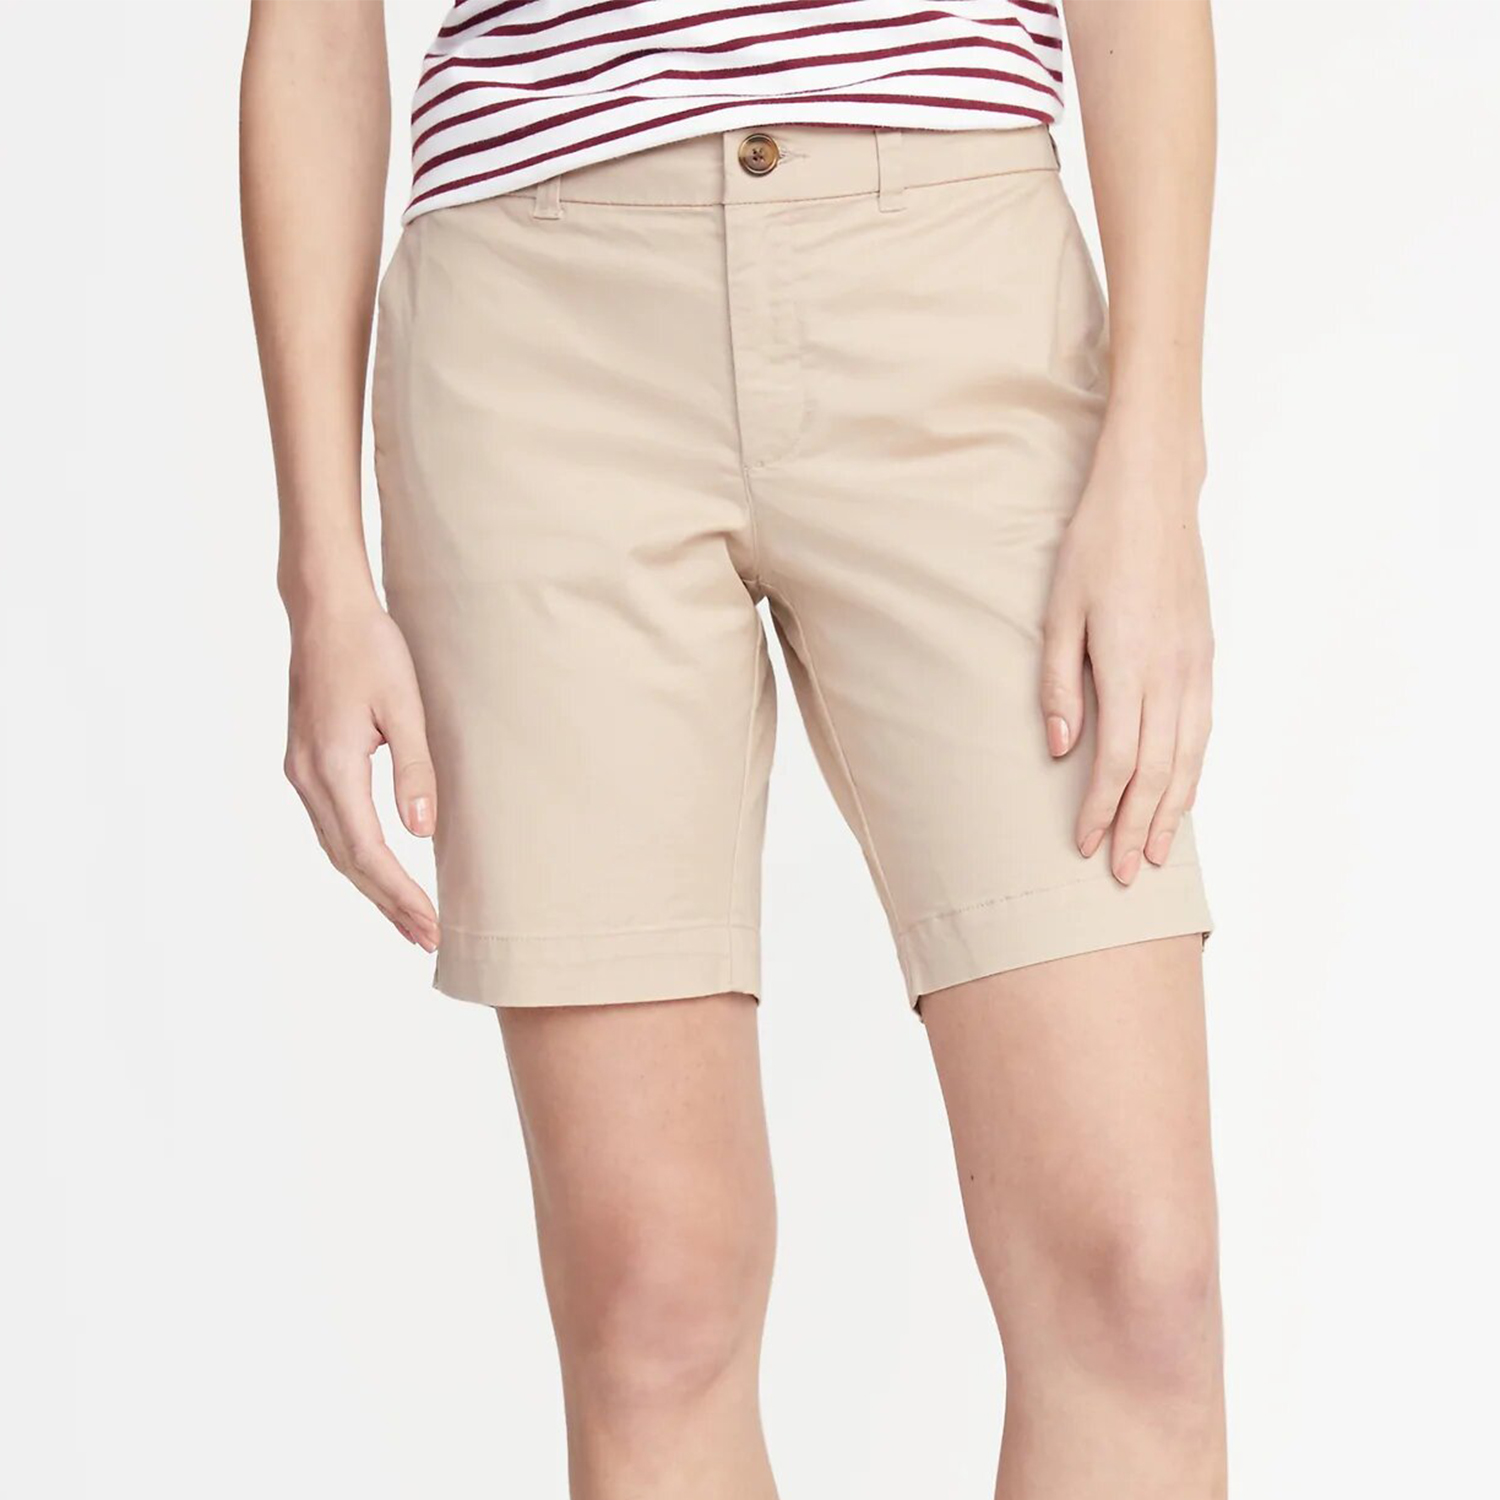 Old Navy Clothing Sale clothing